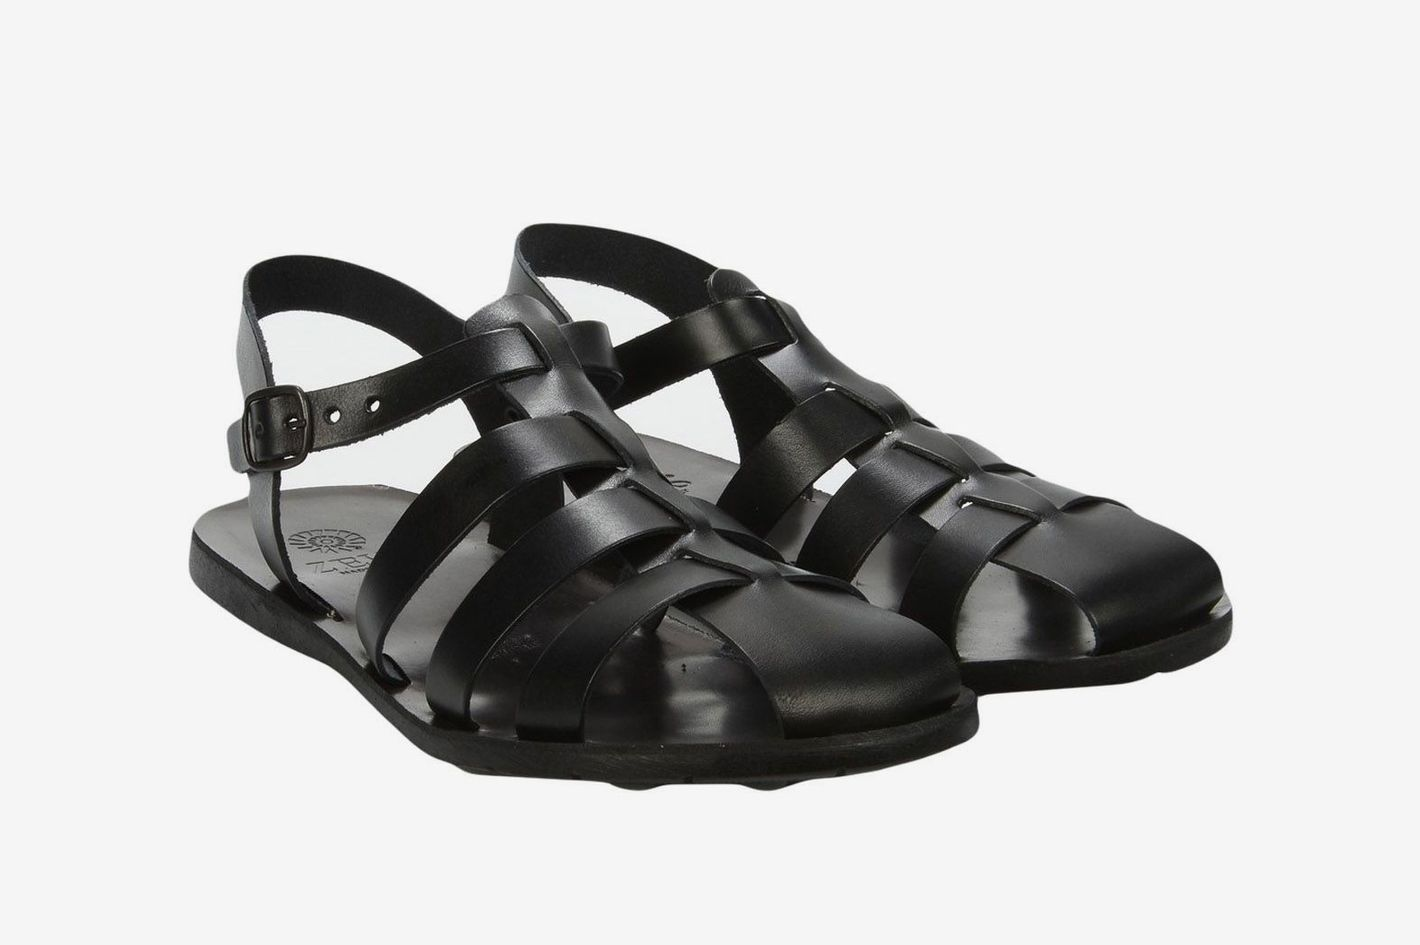 d725c5adc9af 29 Stylish Men s Sandals to Wear This Summer